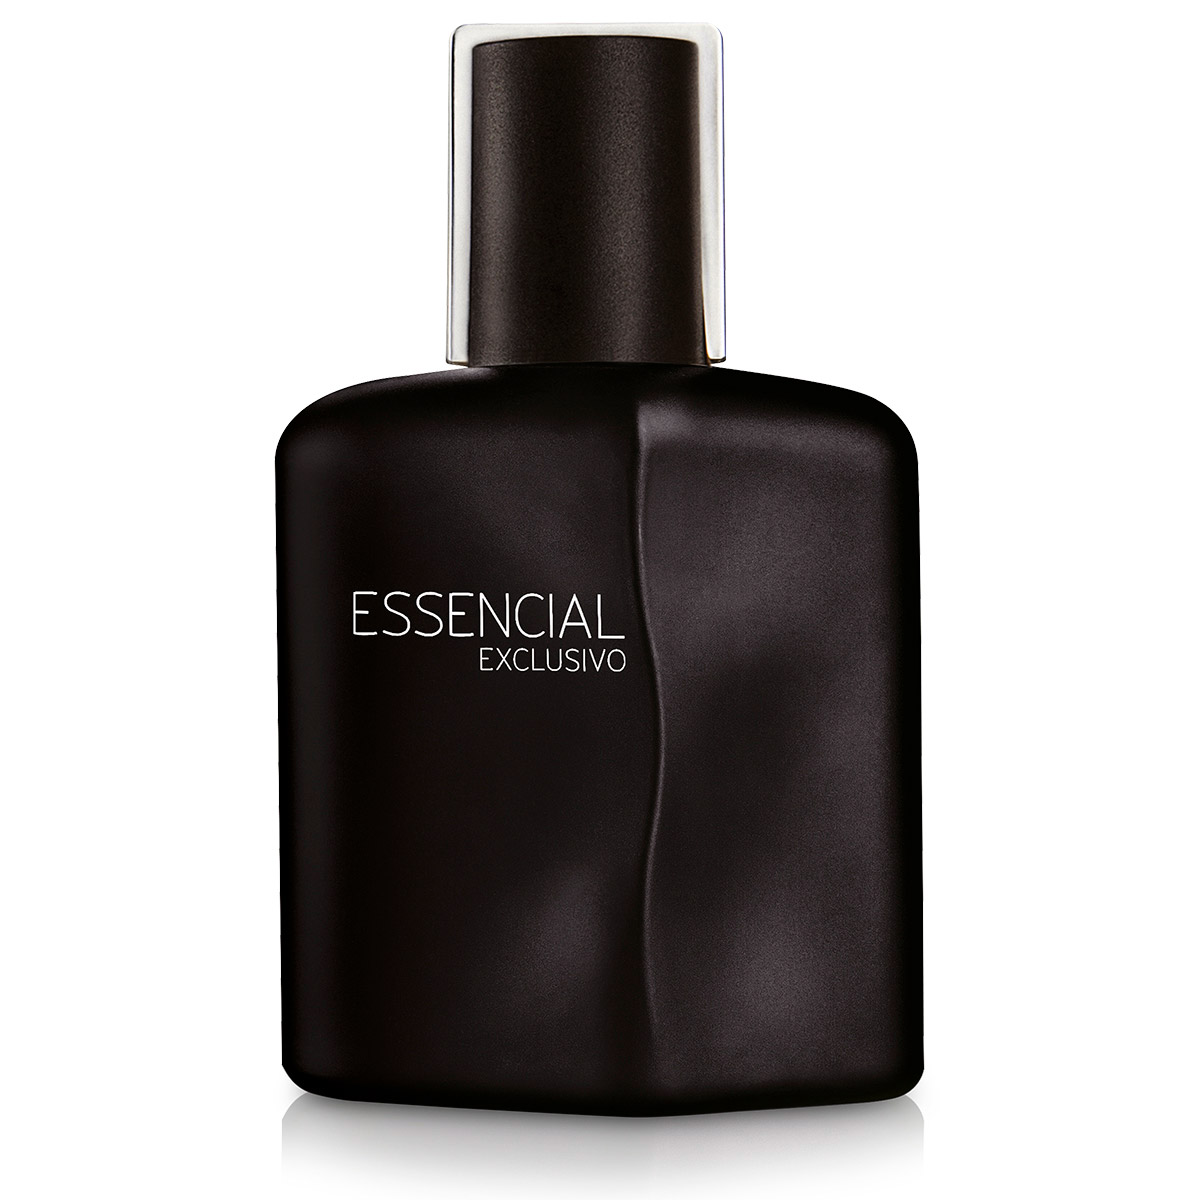 Deo Parfum Essencial Exclusivo Masculino - 50ml - 68240